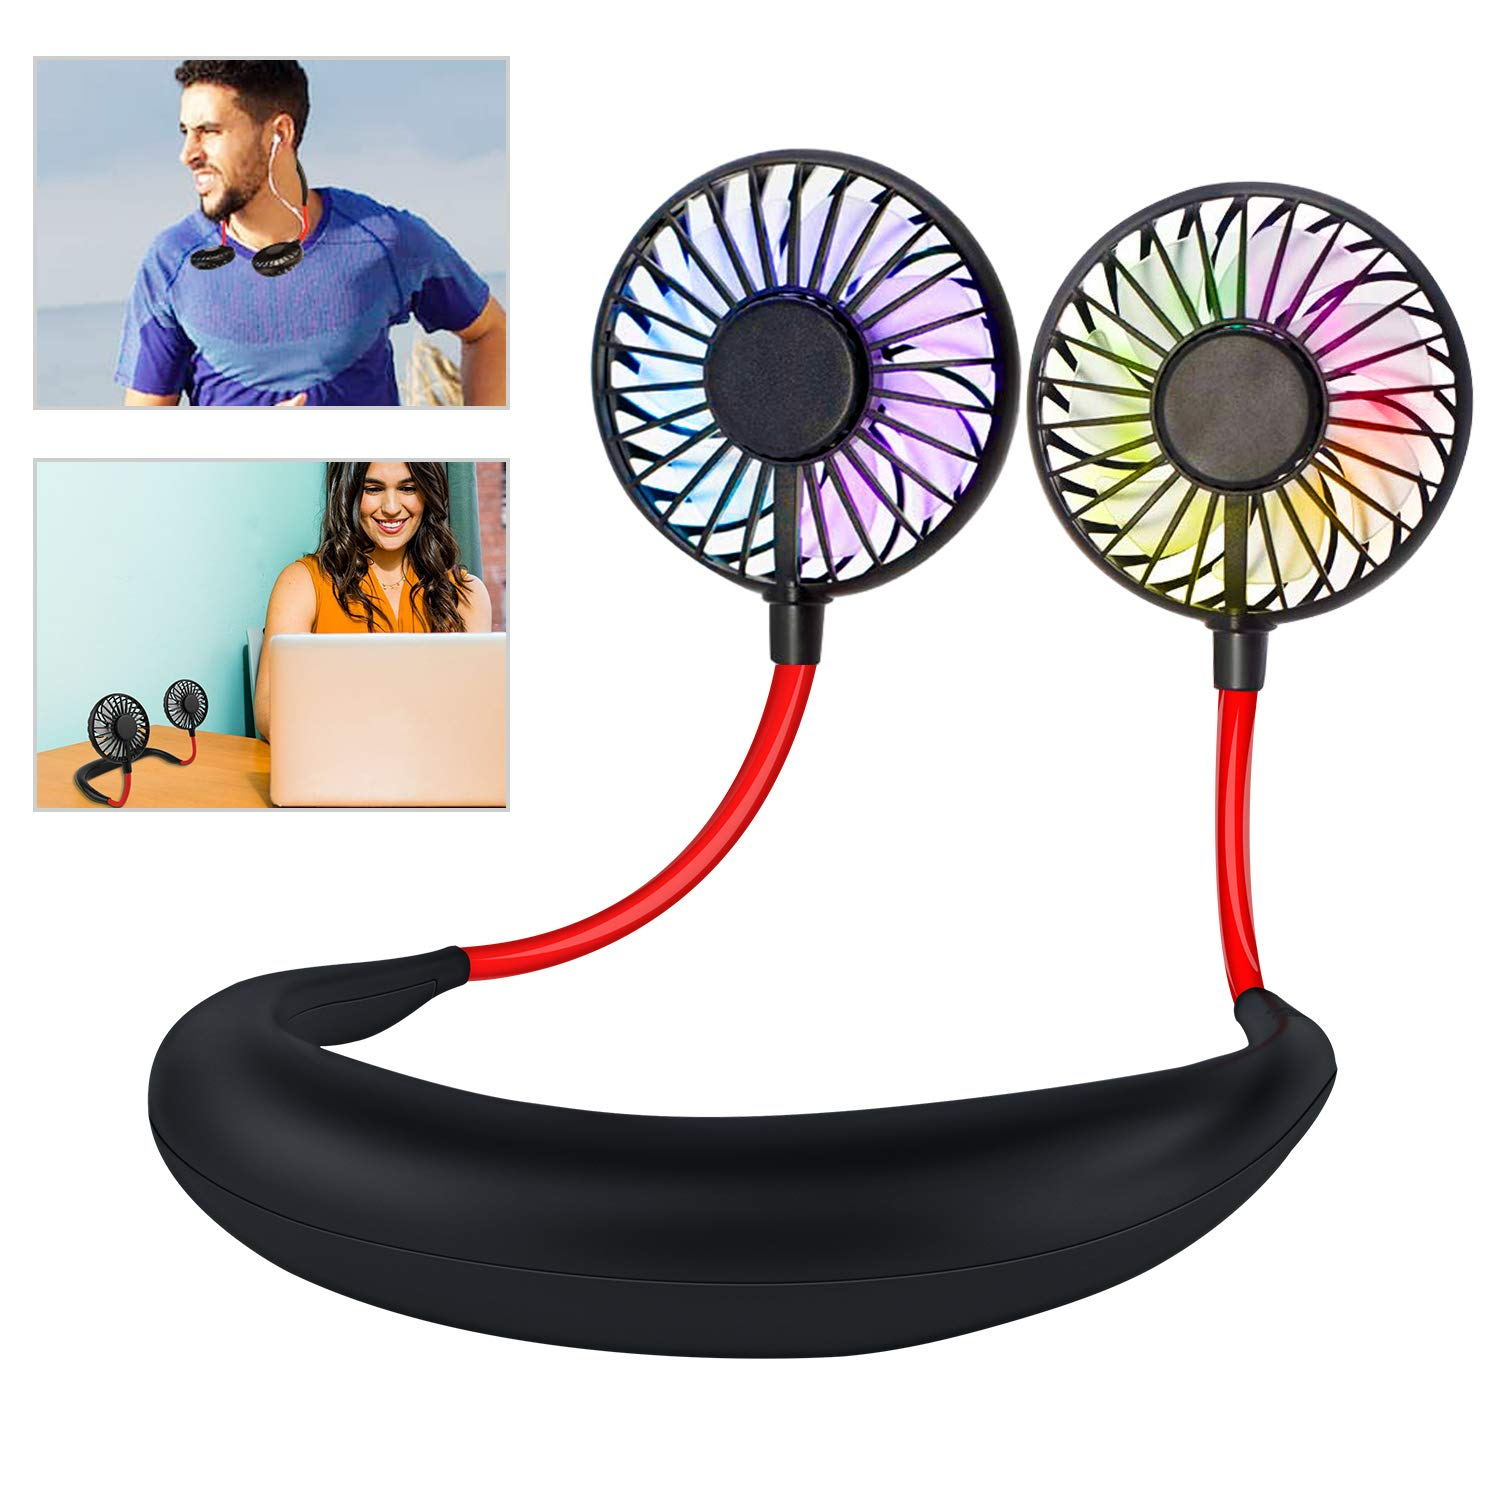 Leipple Neck Fan Portable- Neckband Fan USB Charging Hand Free - Personal Mini Sport Fan - Rechargeable with 3 Speeds Adjustable and LED Light for Sports Travel Outdoor Office Reading by Leipple